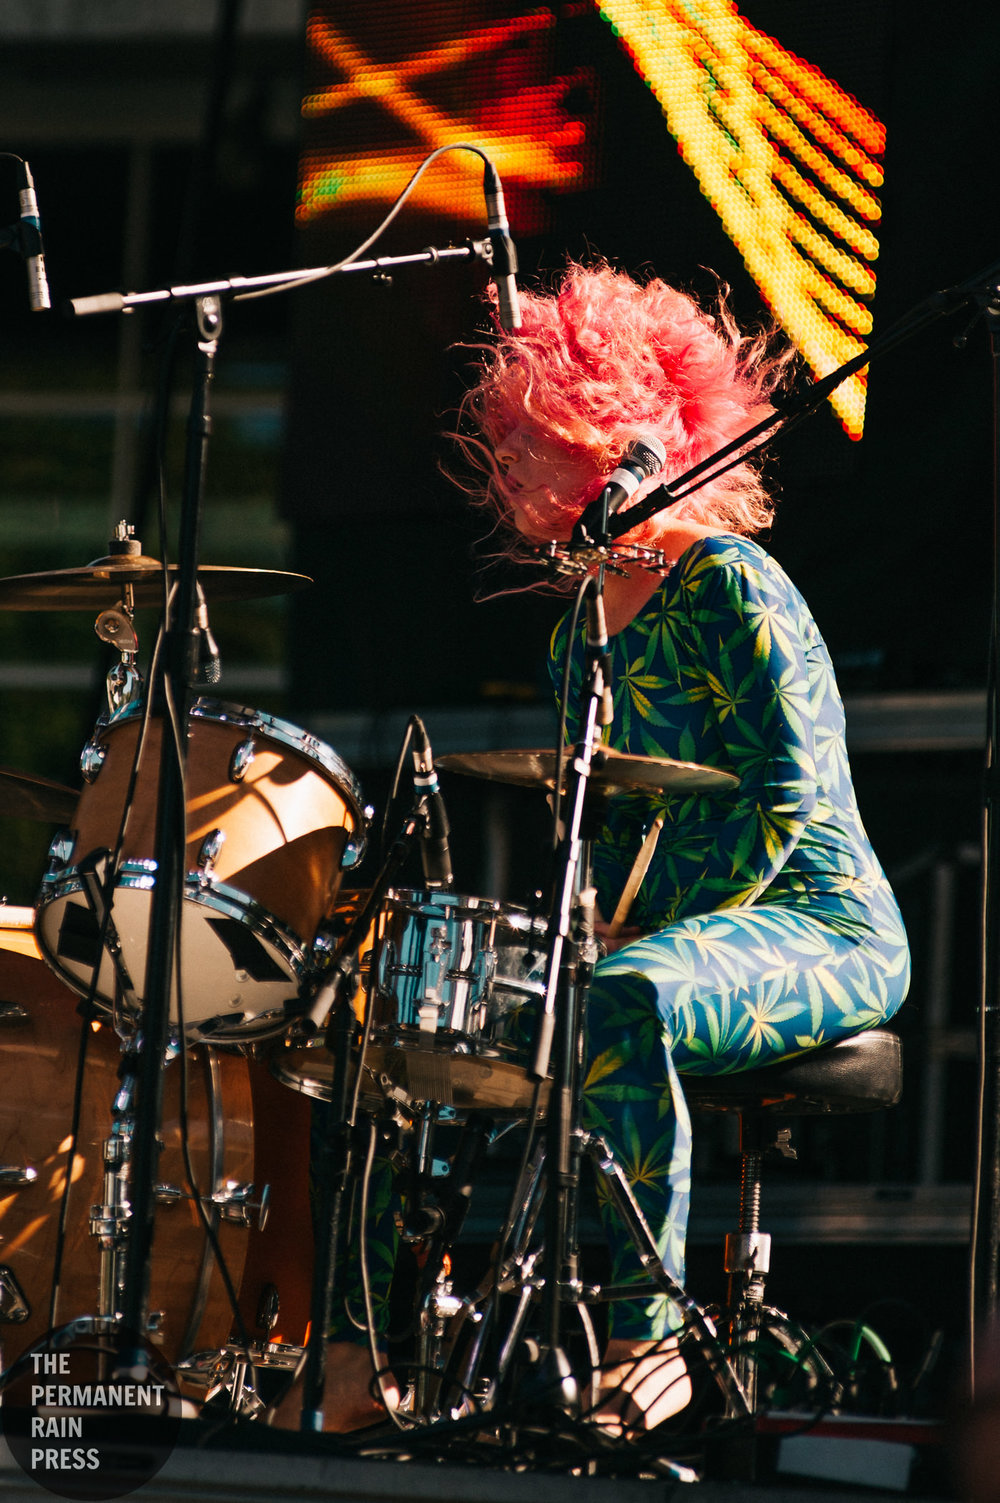 6_Deap_Valley-Seattle-Timothy_Nguyen-20170901 (4 of 12).jpg